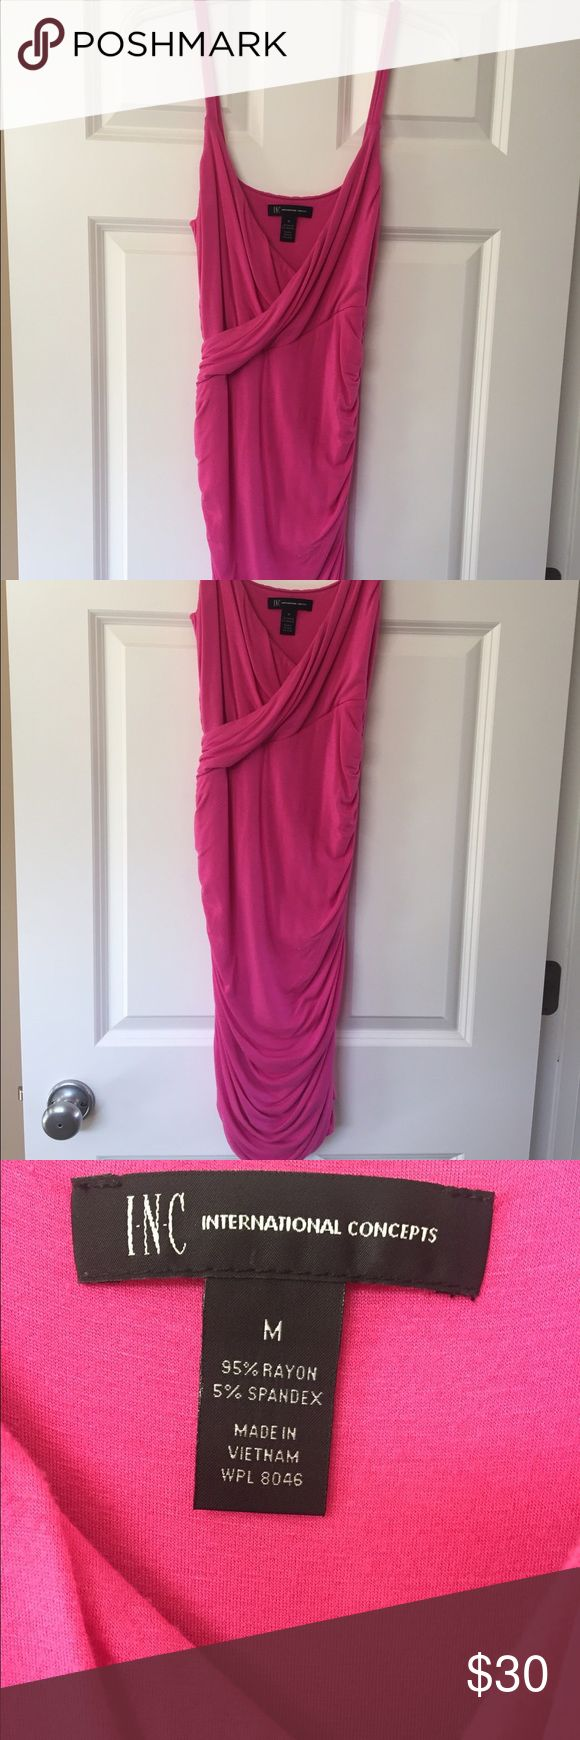 INC Pink Dress With Side Ruching INC pink dress with very flattering side ruching. V-neck. From a pet free and smoke free home. Dress is stretchy. Worn once. Beautiful! INC International Concepts Dresses